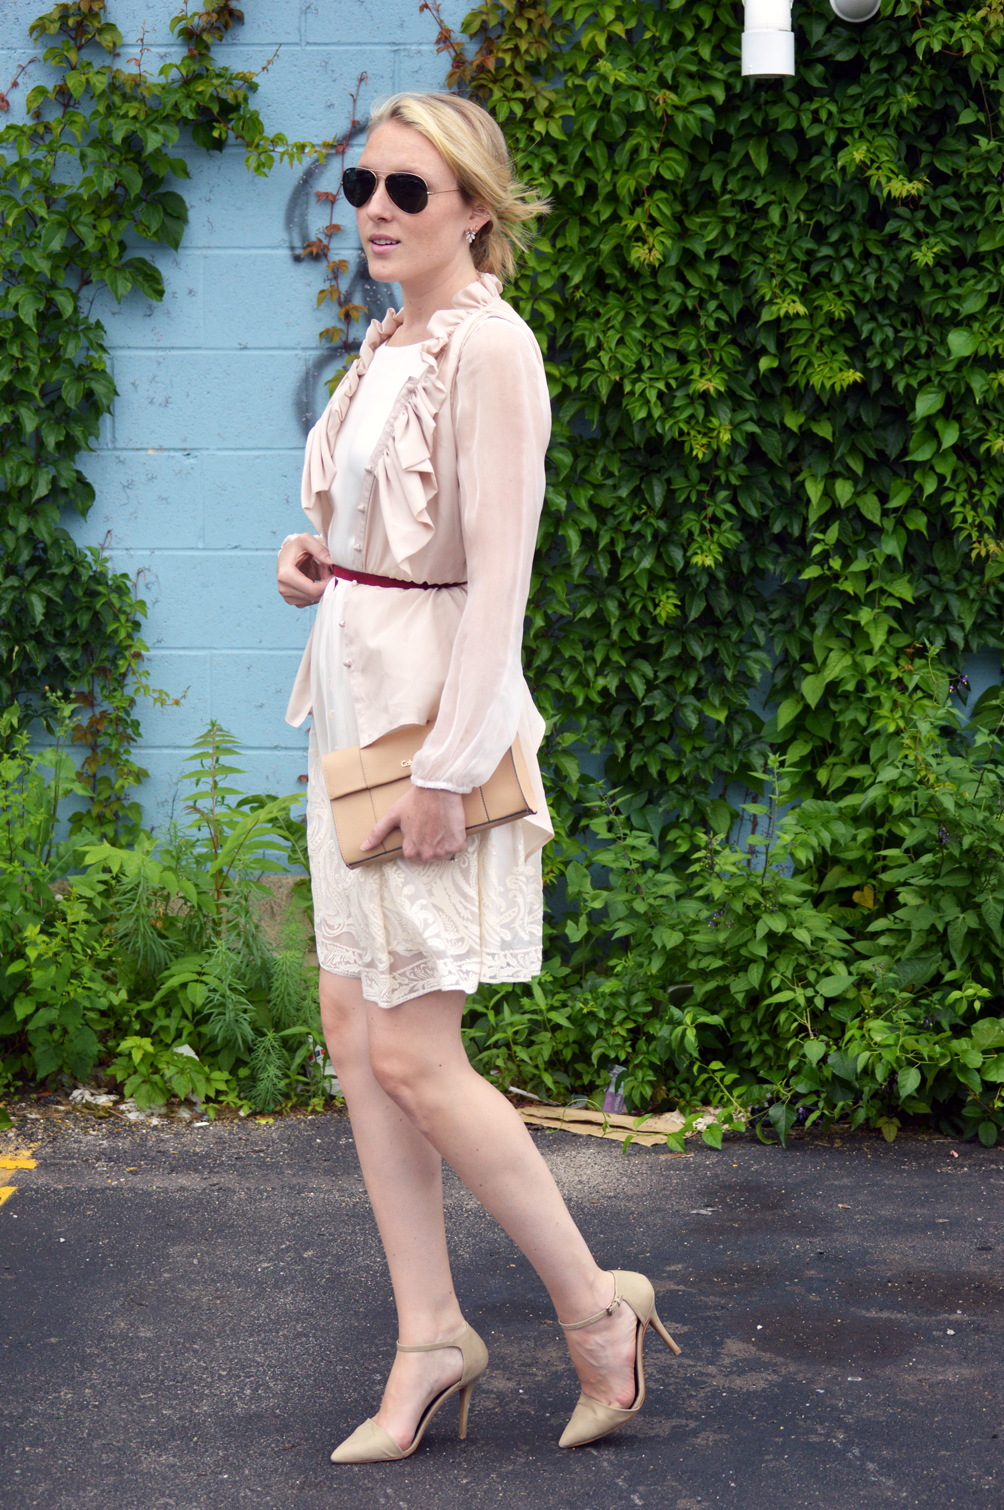 sheer sleeve lace dress summer outfit idea